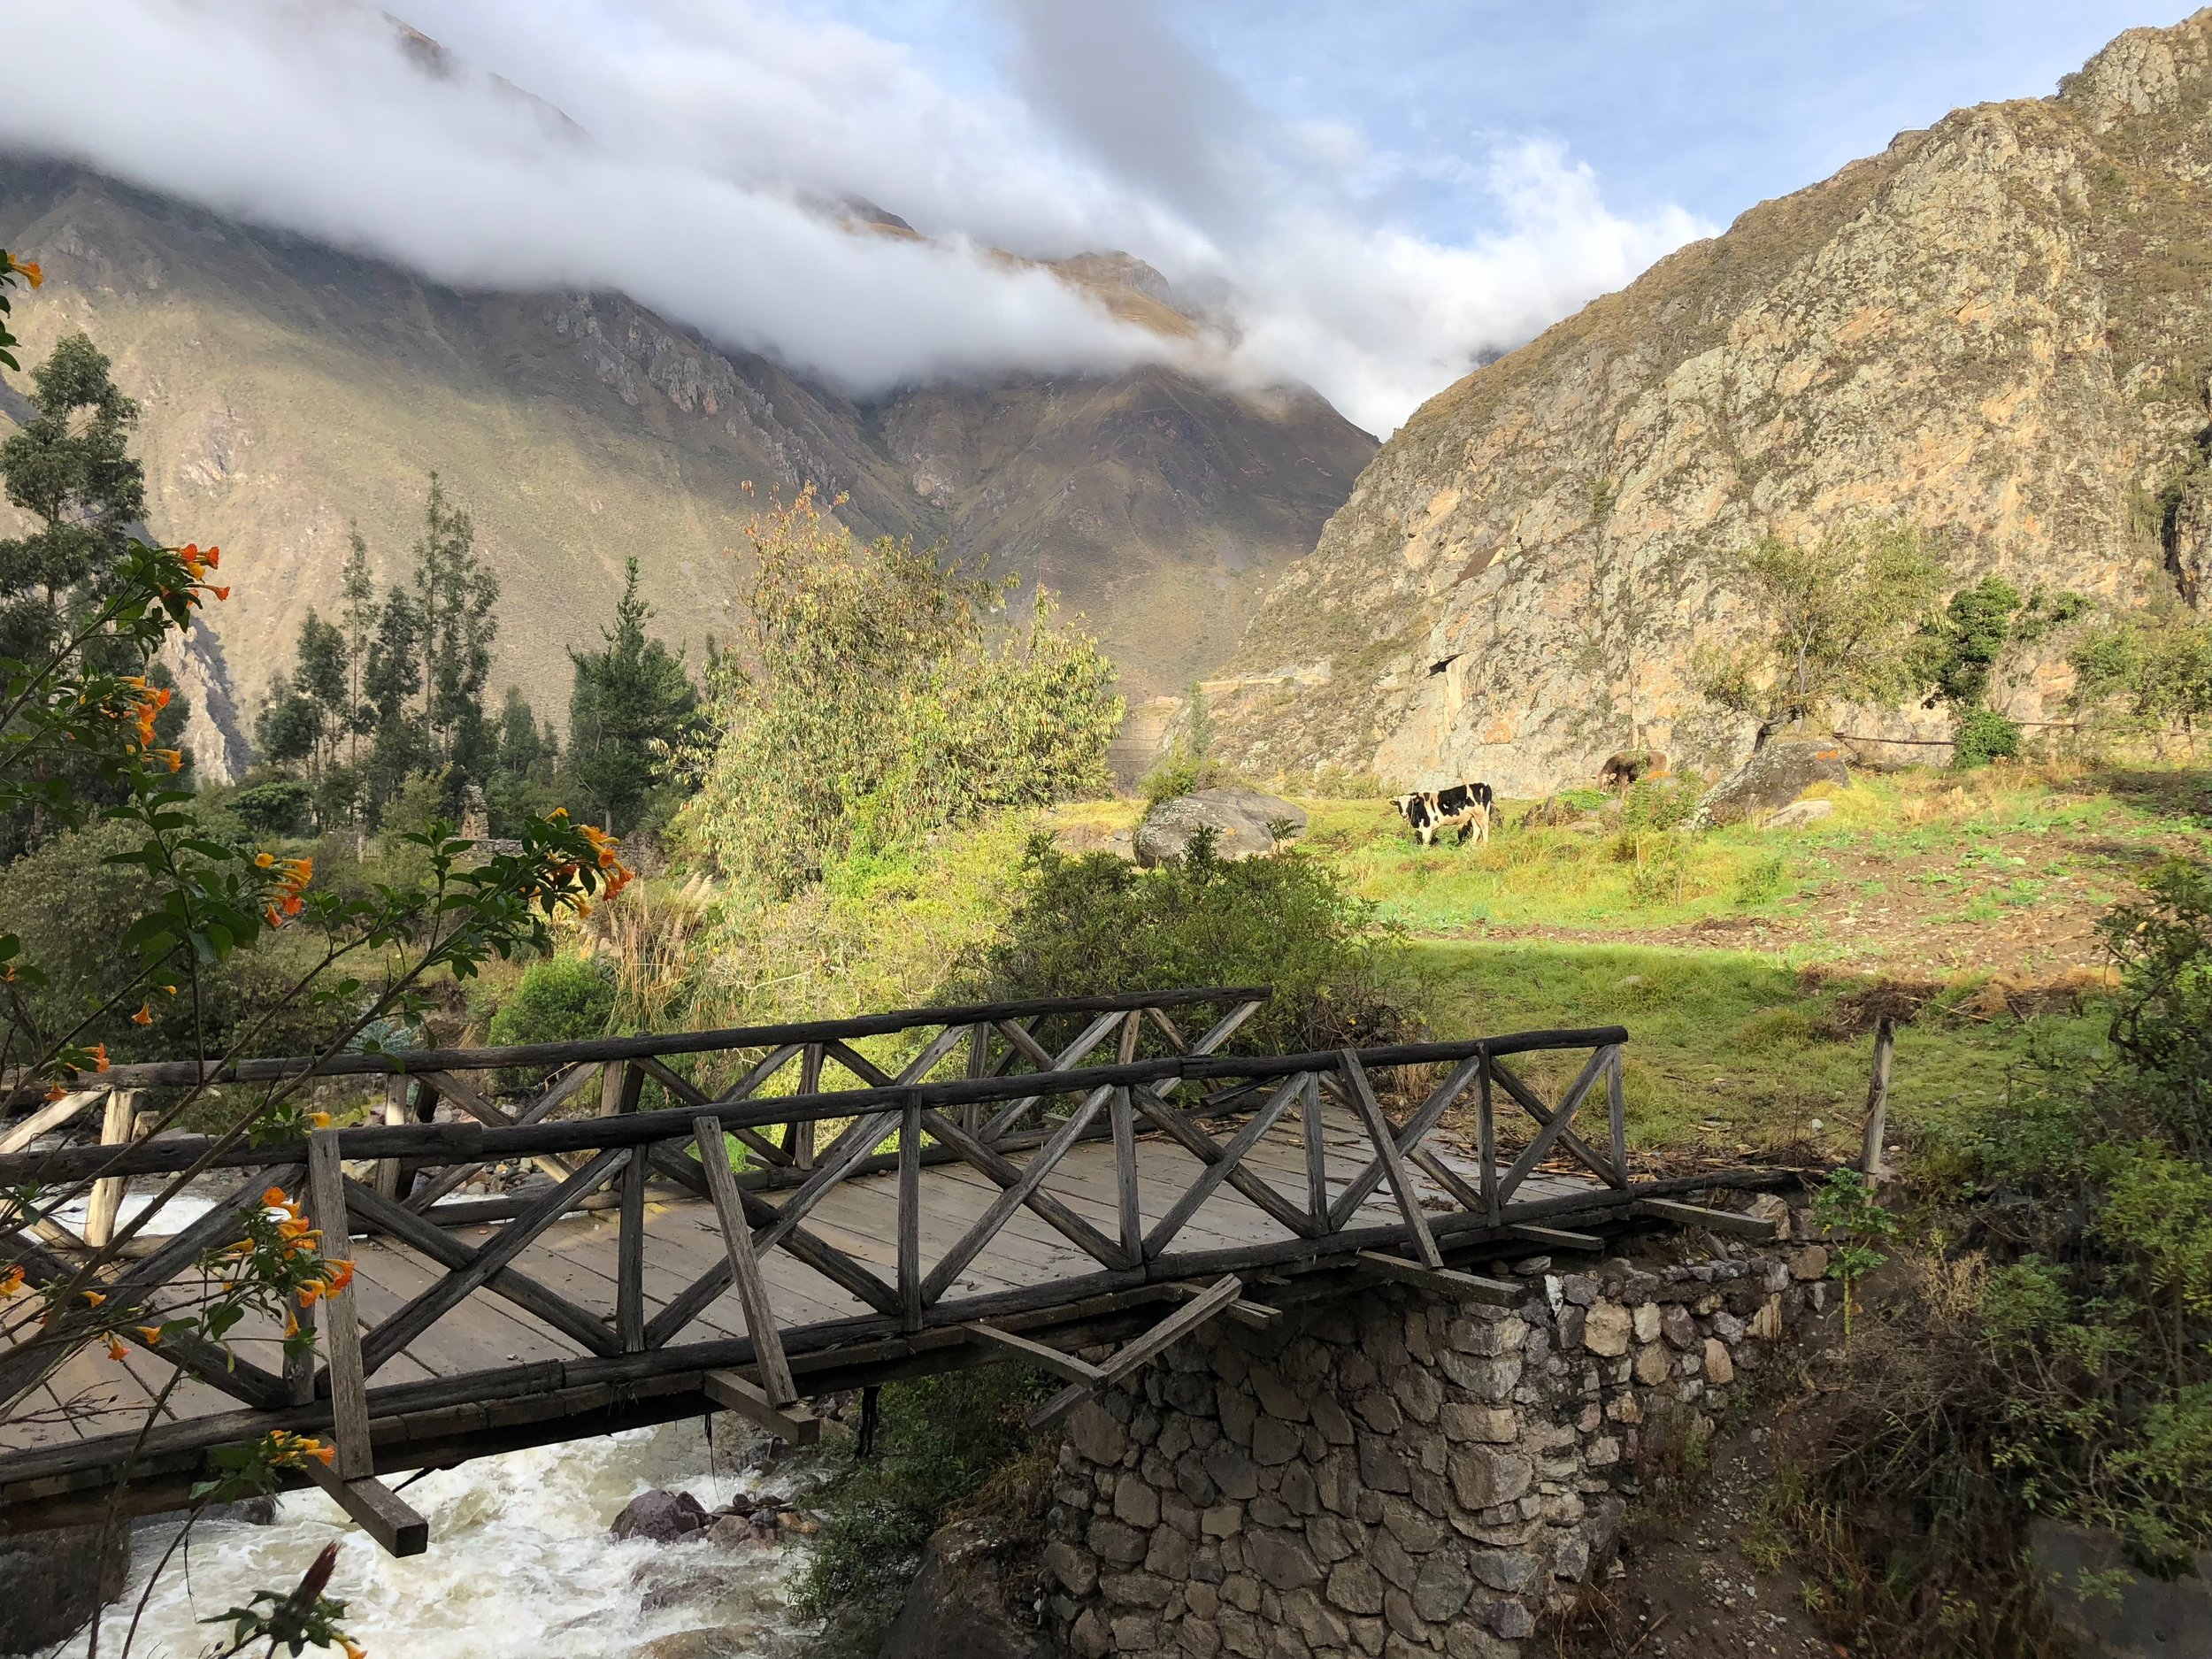 View from our hotel in Ollantaytambo.